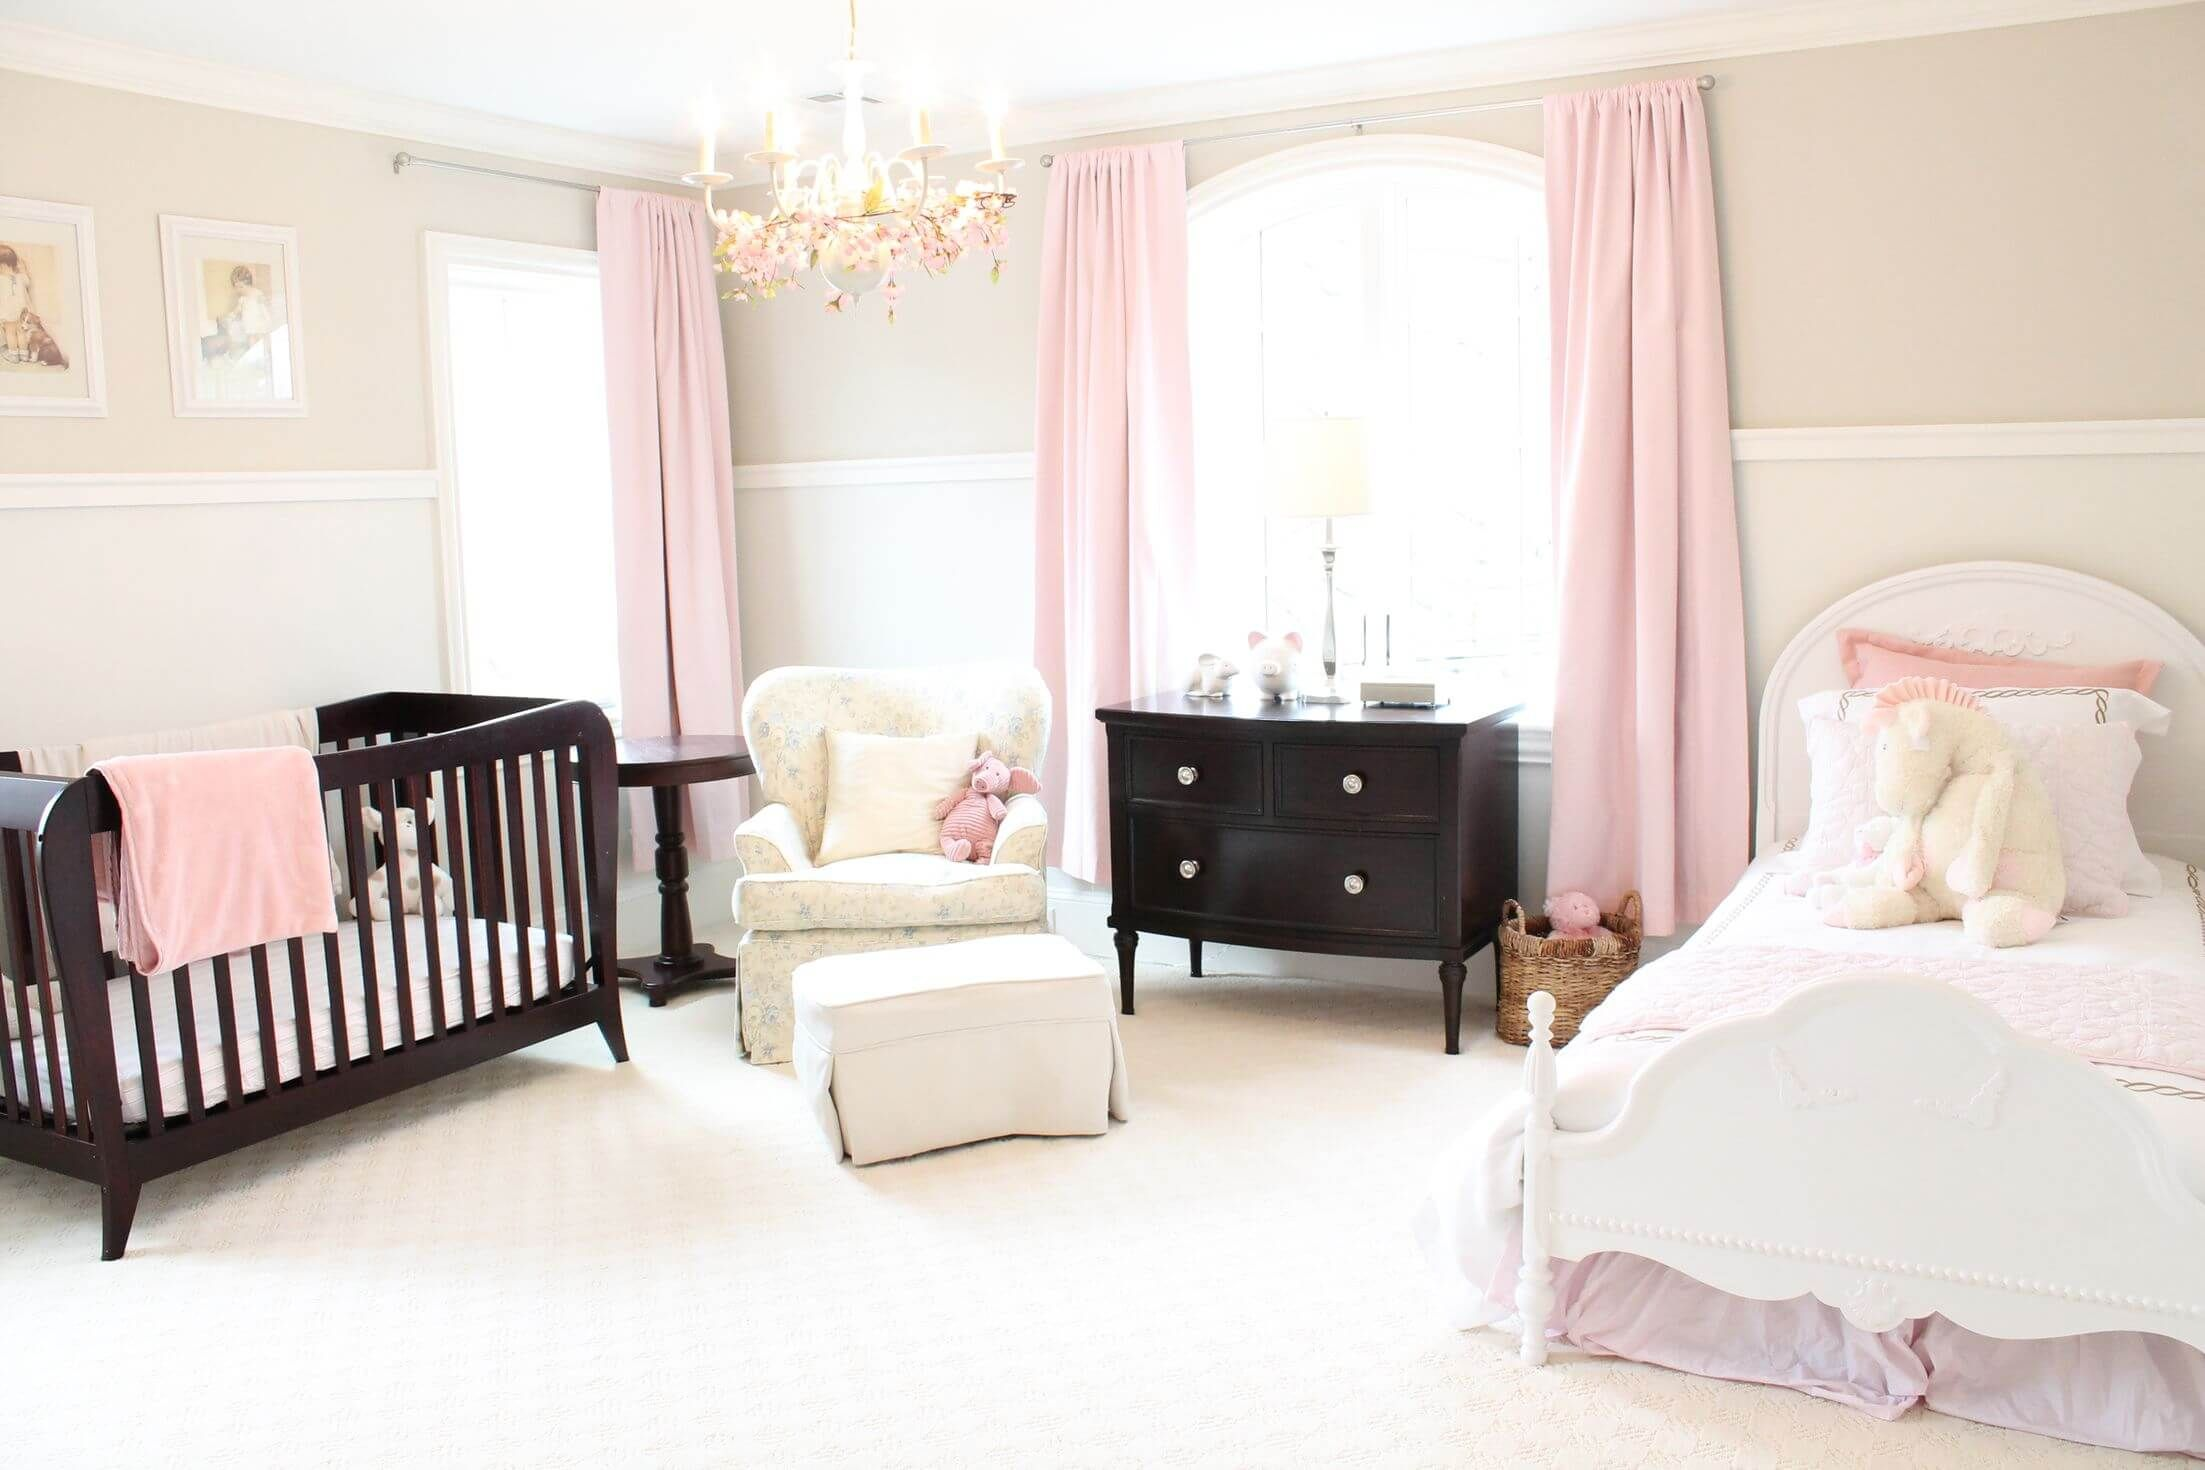 Pure White Mixed With Subtle Splashes Of Pink In This Large Nursery Unify The Look From Linens On Both Bed And Crib To Floor Length D